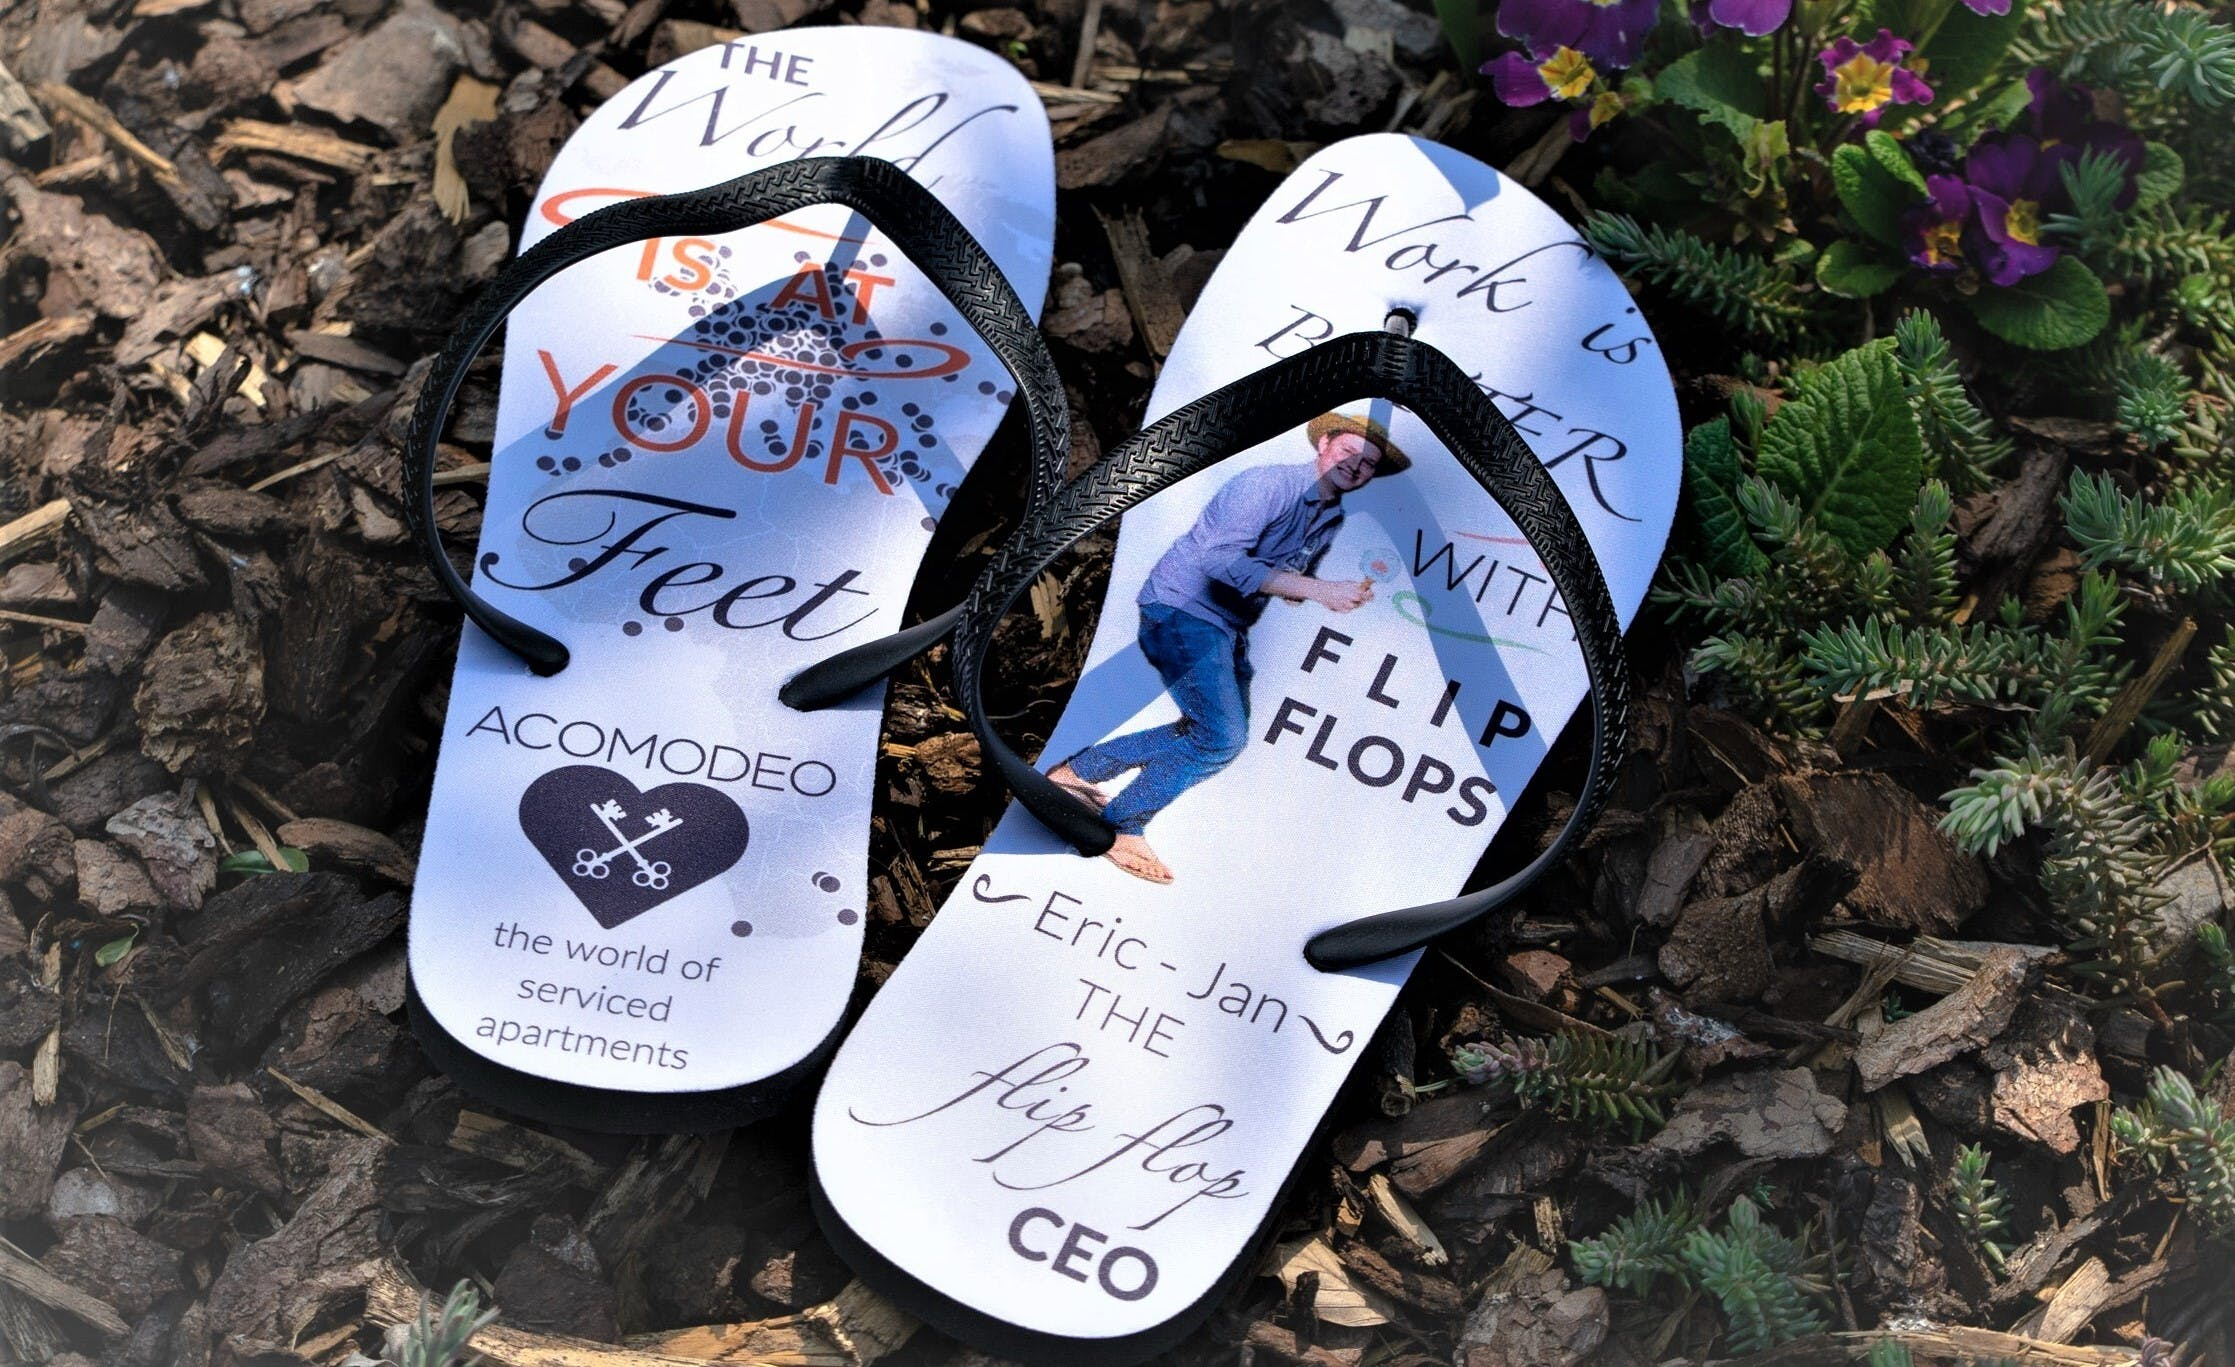 Eric-Jan Krausch | The Flip-Flop-CEO